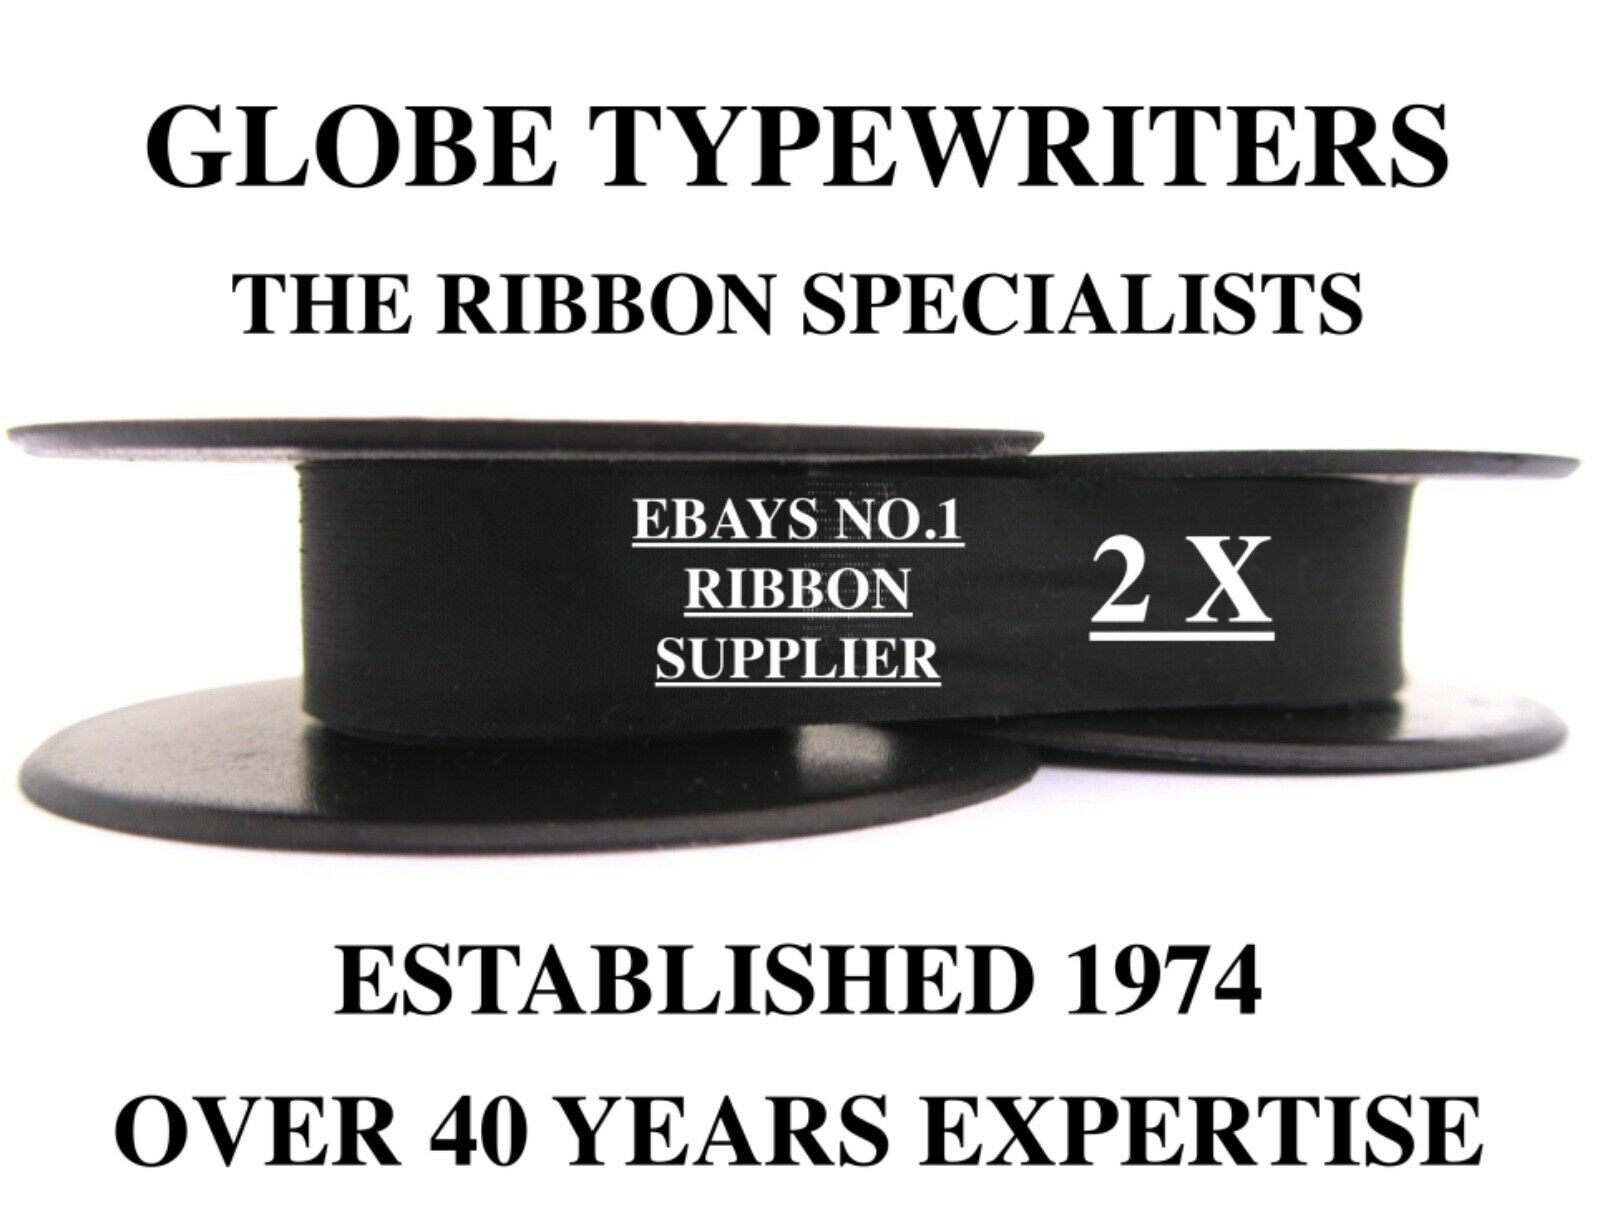 2 x SILVER REED SILVERETTE *BLACK* TOP QUALITY *10M* TYPEWRITER RIBBONS+EYELETS